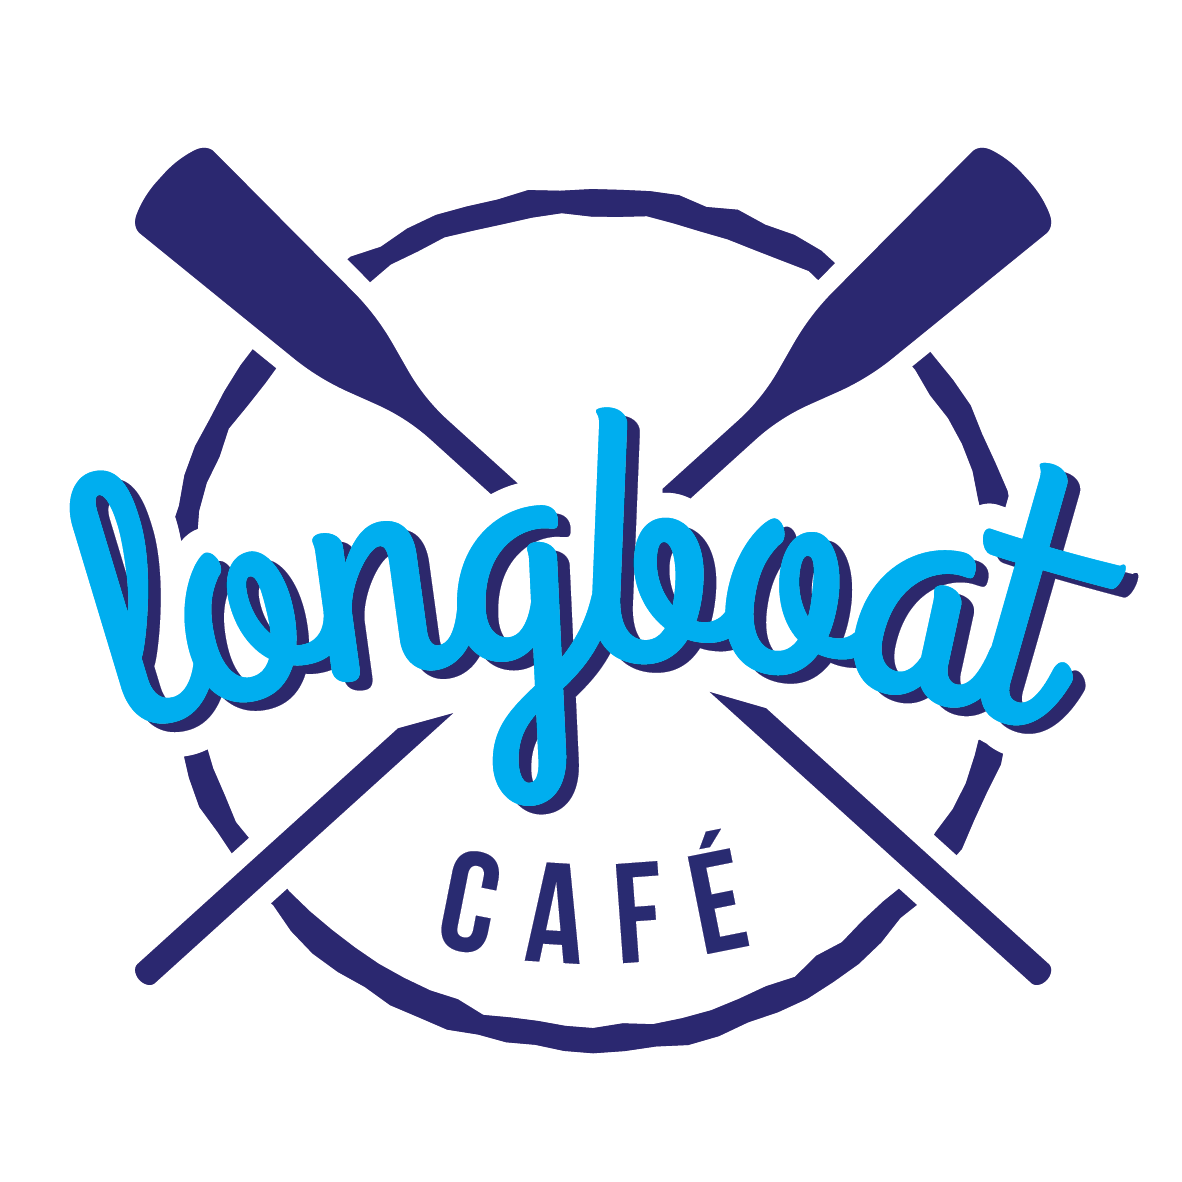 Longboat Cafe | Fingal Bay